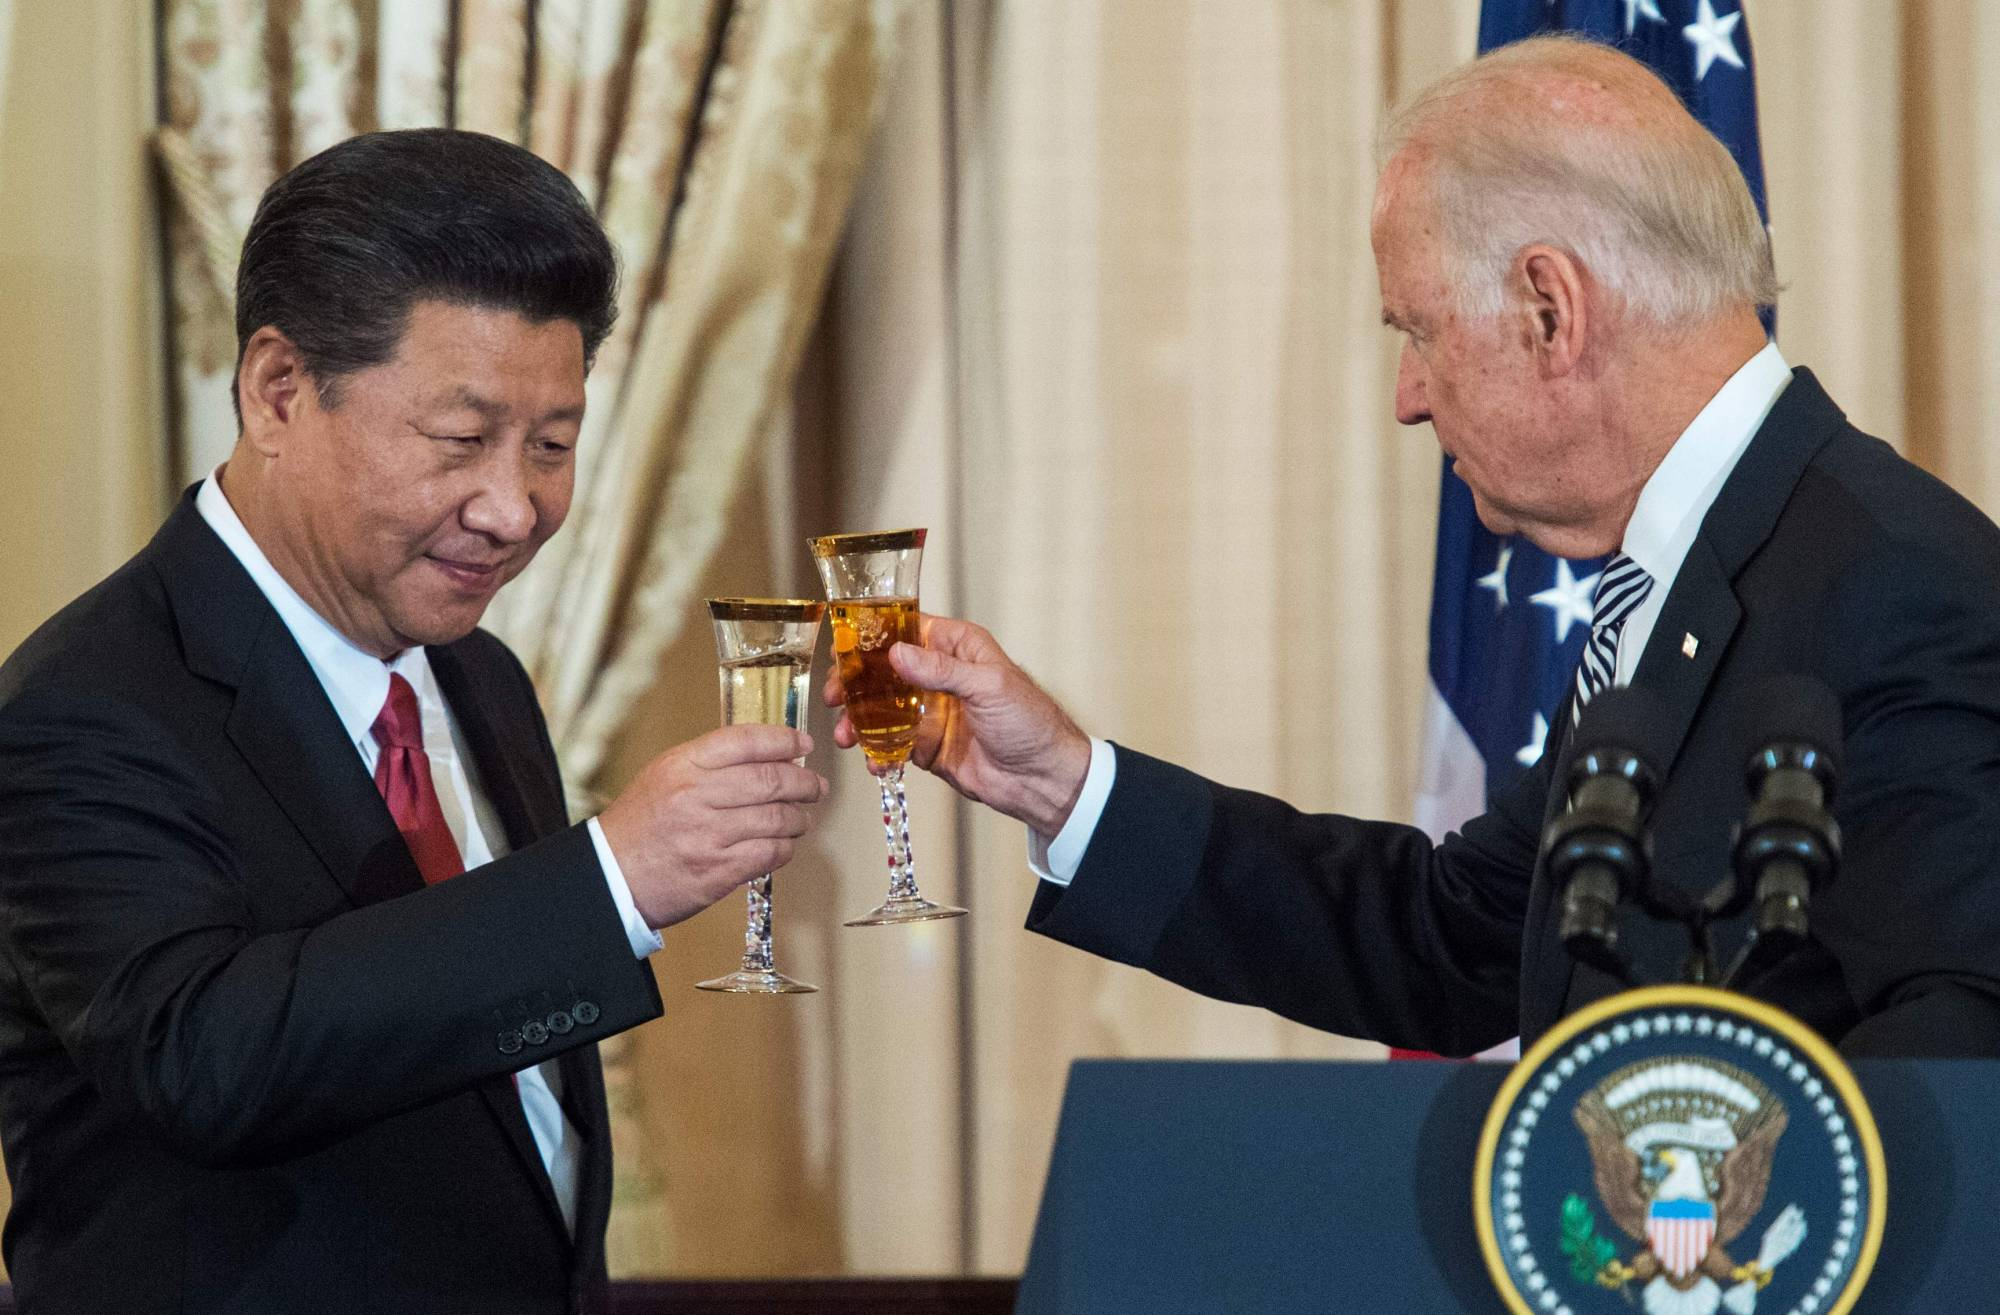 Then-U.S. Vice President Joe Biden and Chinese President Xi Jinping toast during a State Luncheon for China hosted by U.S. Secretary of State John Kerry in Washington in 2015. | AFP-JIJI